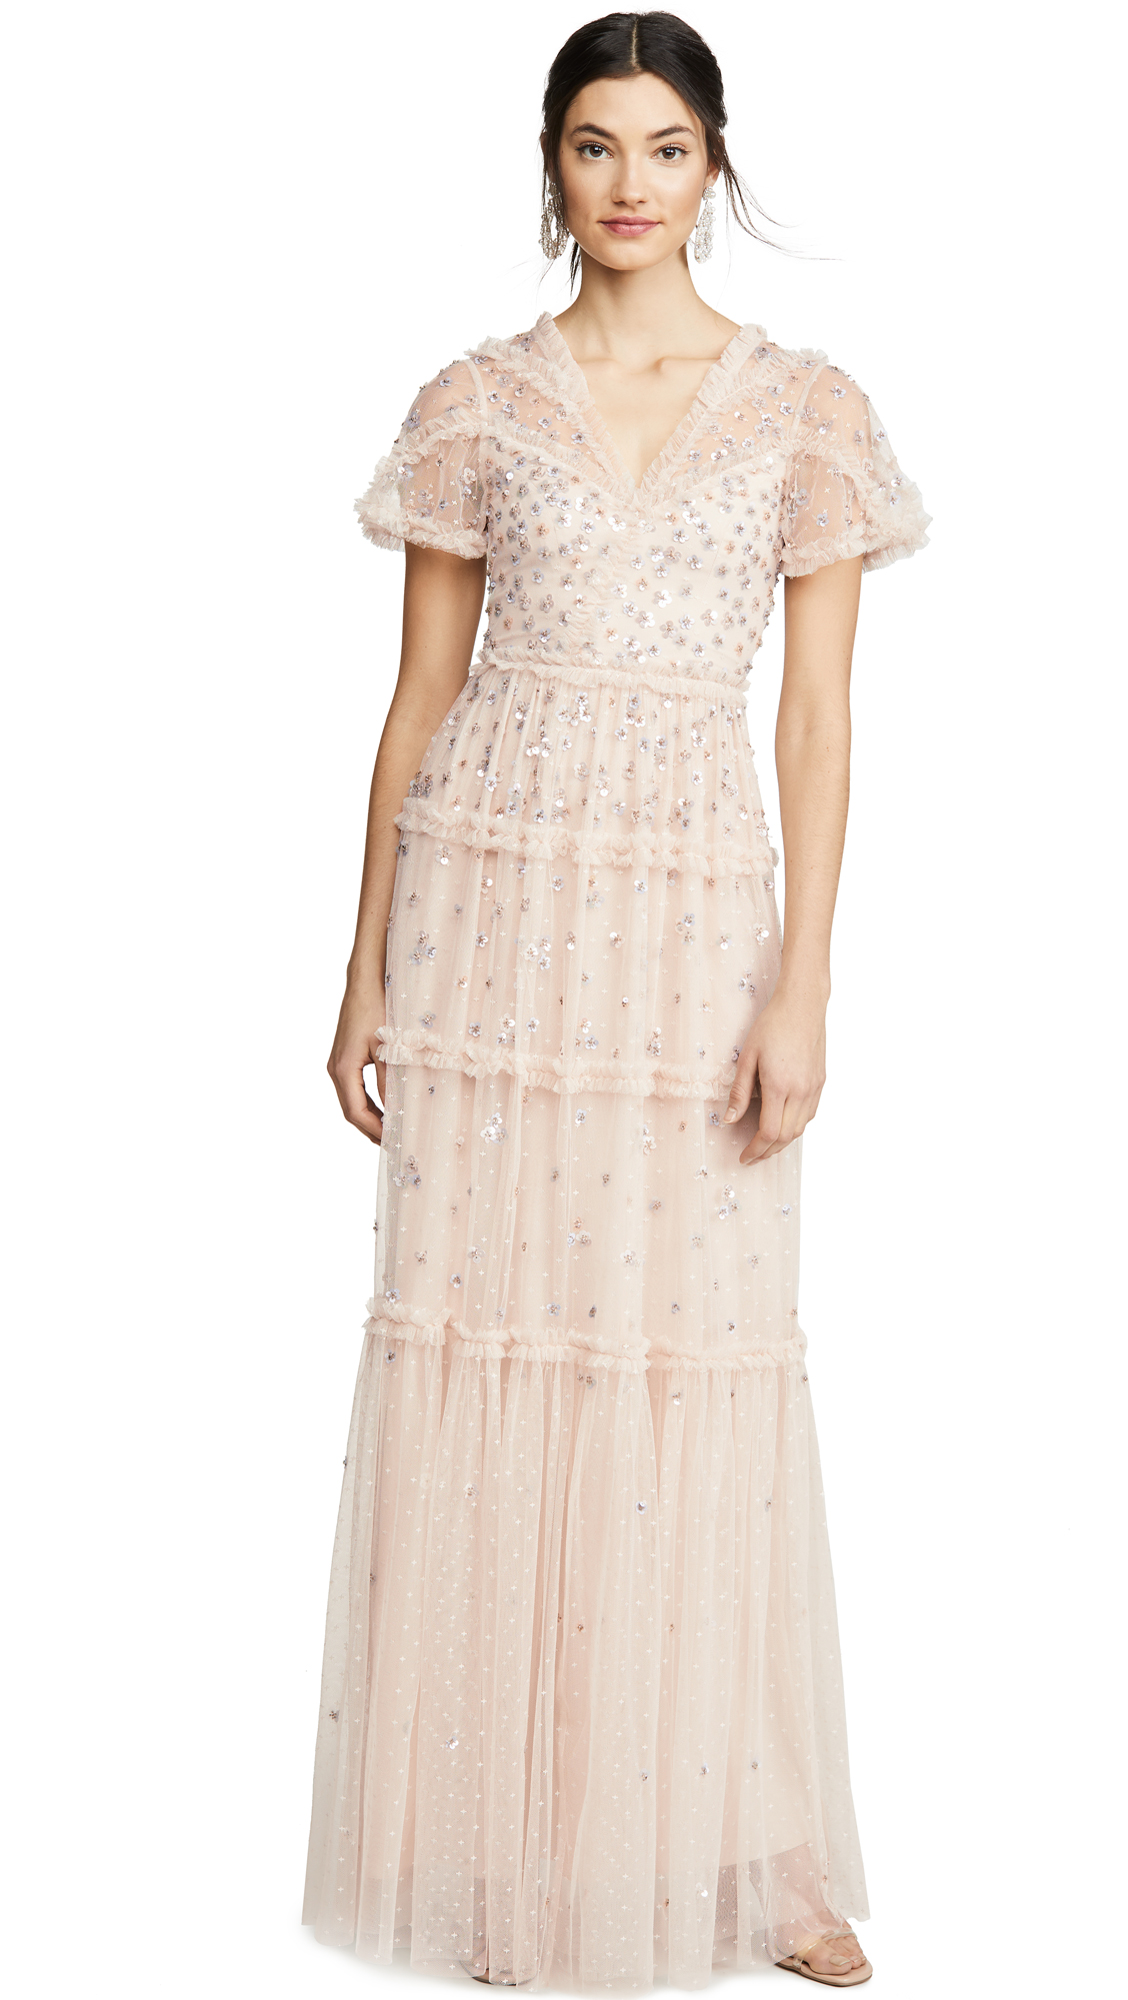 Needle & Thread Ruffle Glimmer Gown - 30% Off Sale